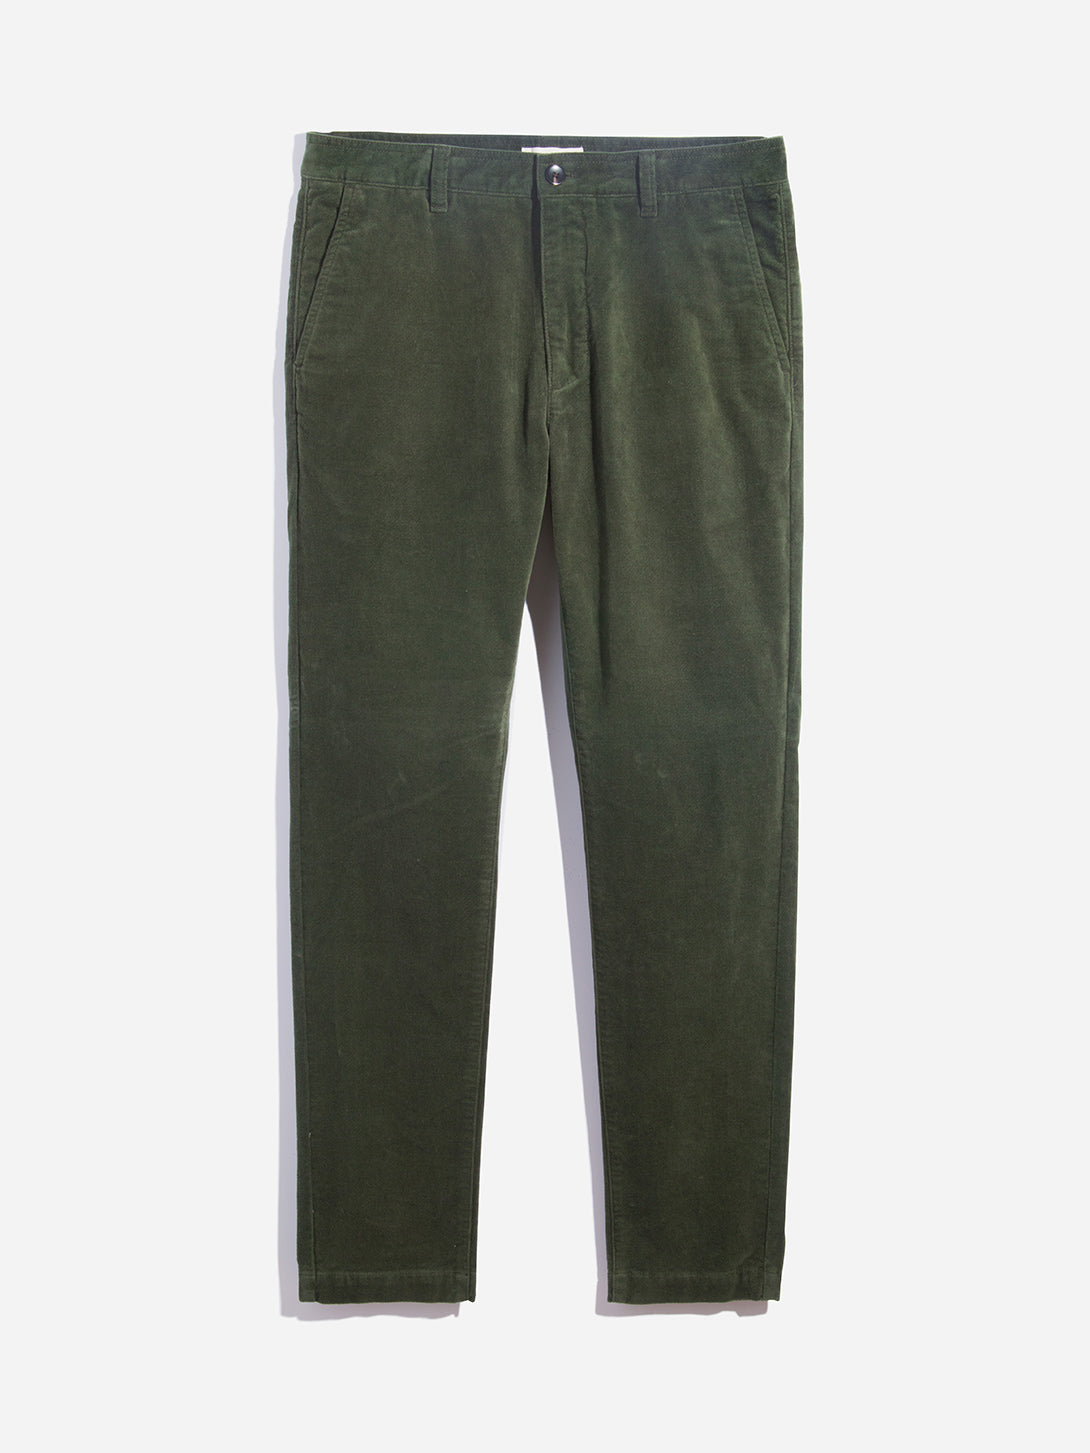 DARK OLIVE GREEN mens chino pants modern chino ons clothing